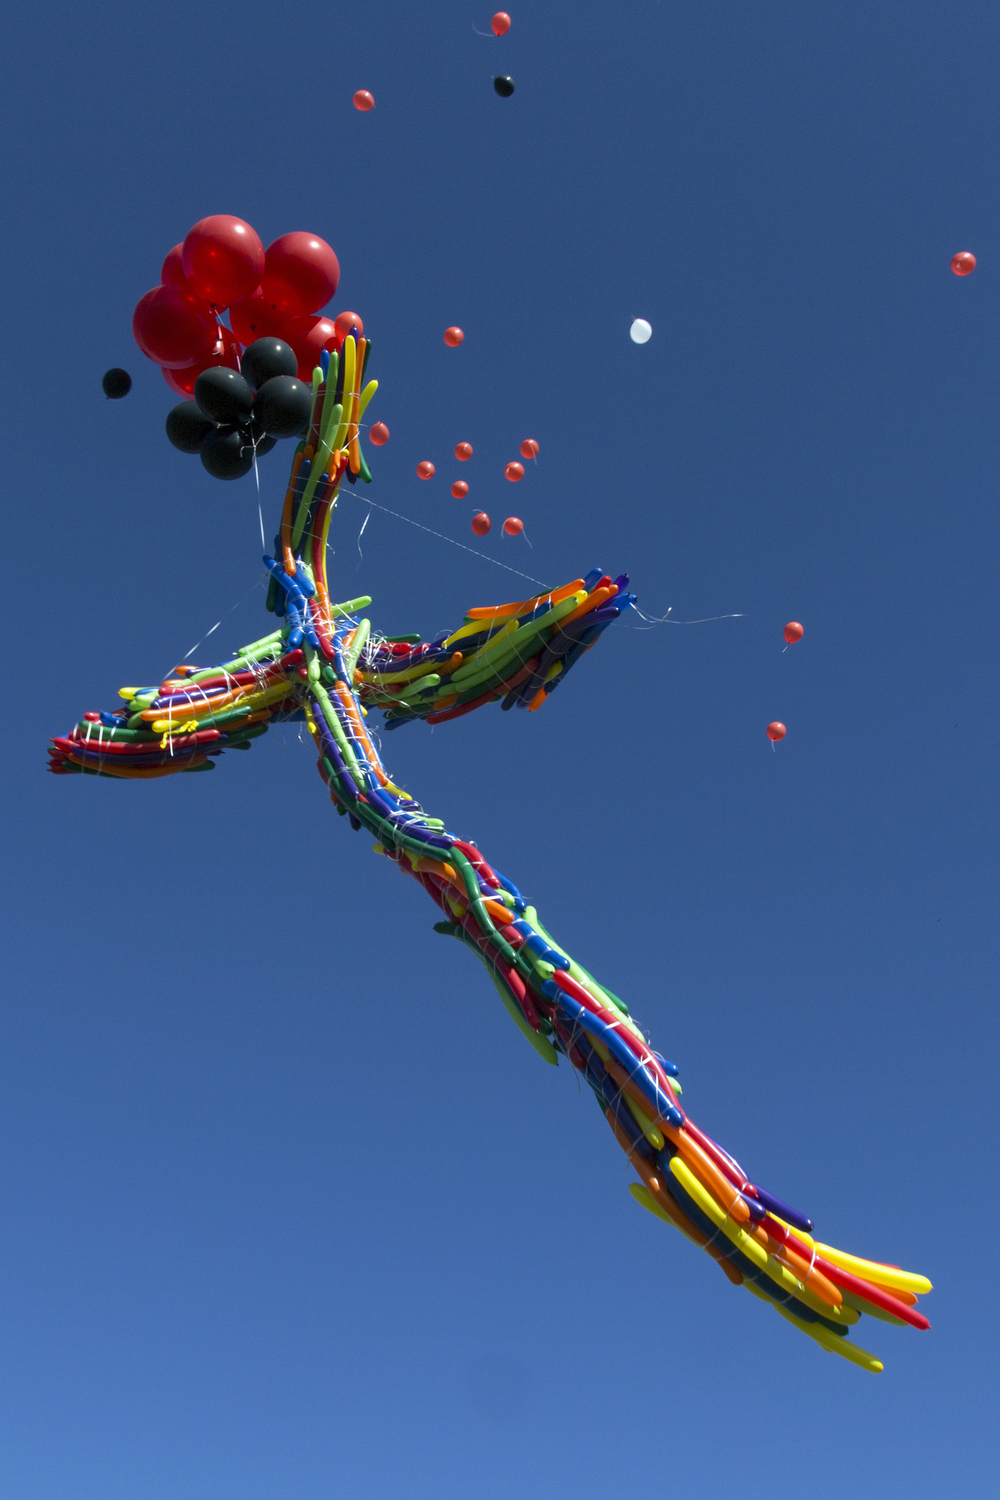 A cross made up of long, thin balloons is released with hundreds of smaller ones.